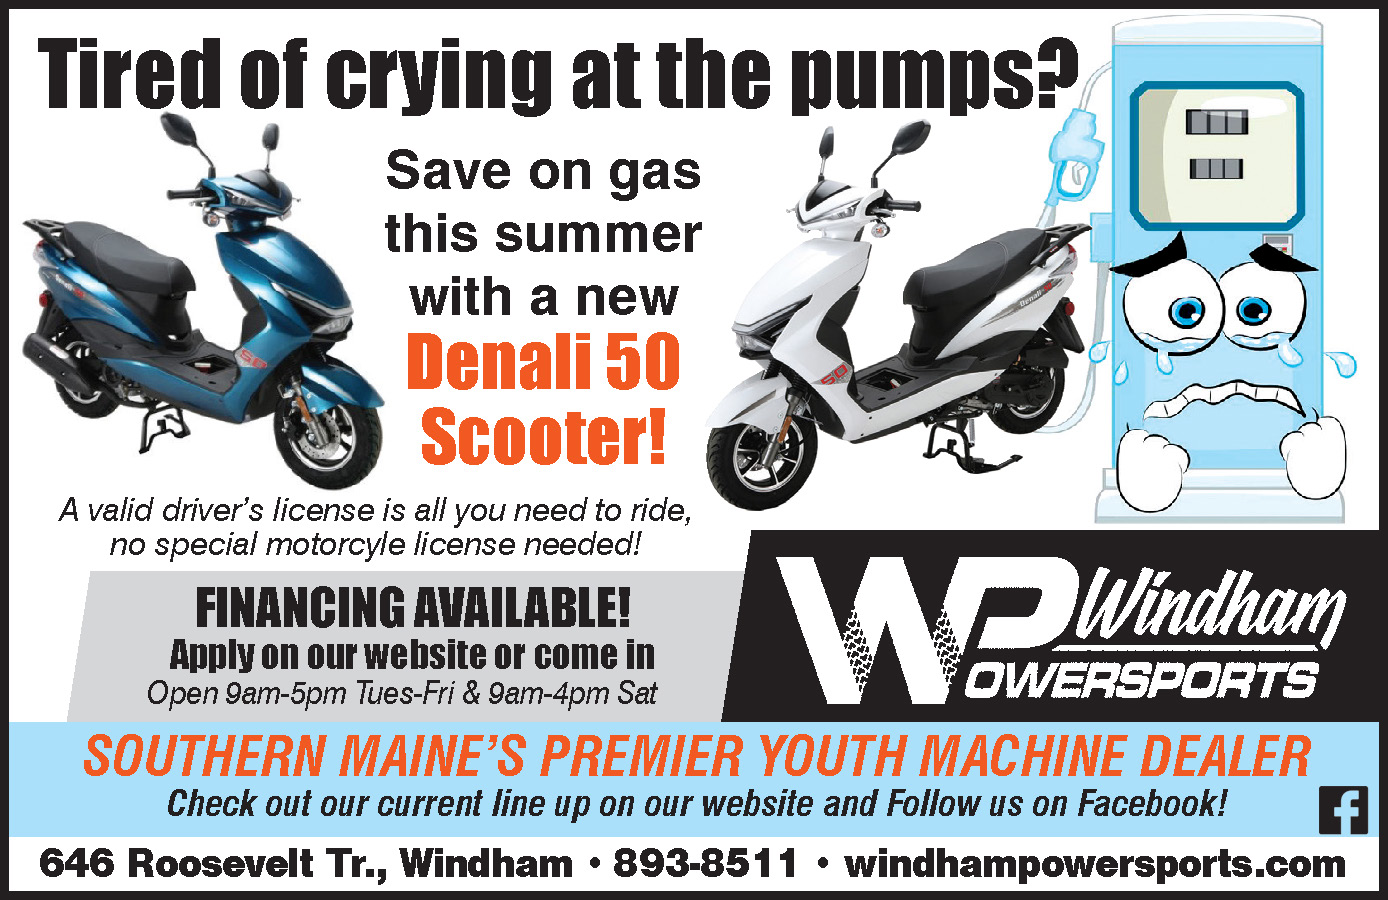 http://windhampowersports.com/